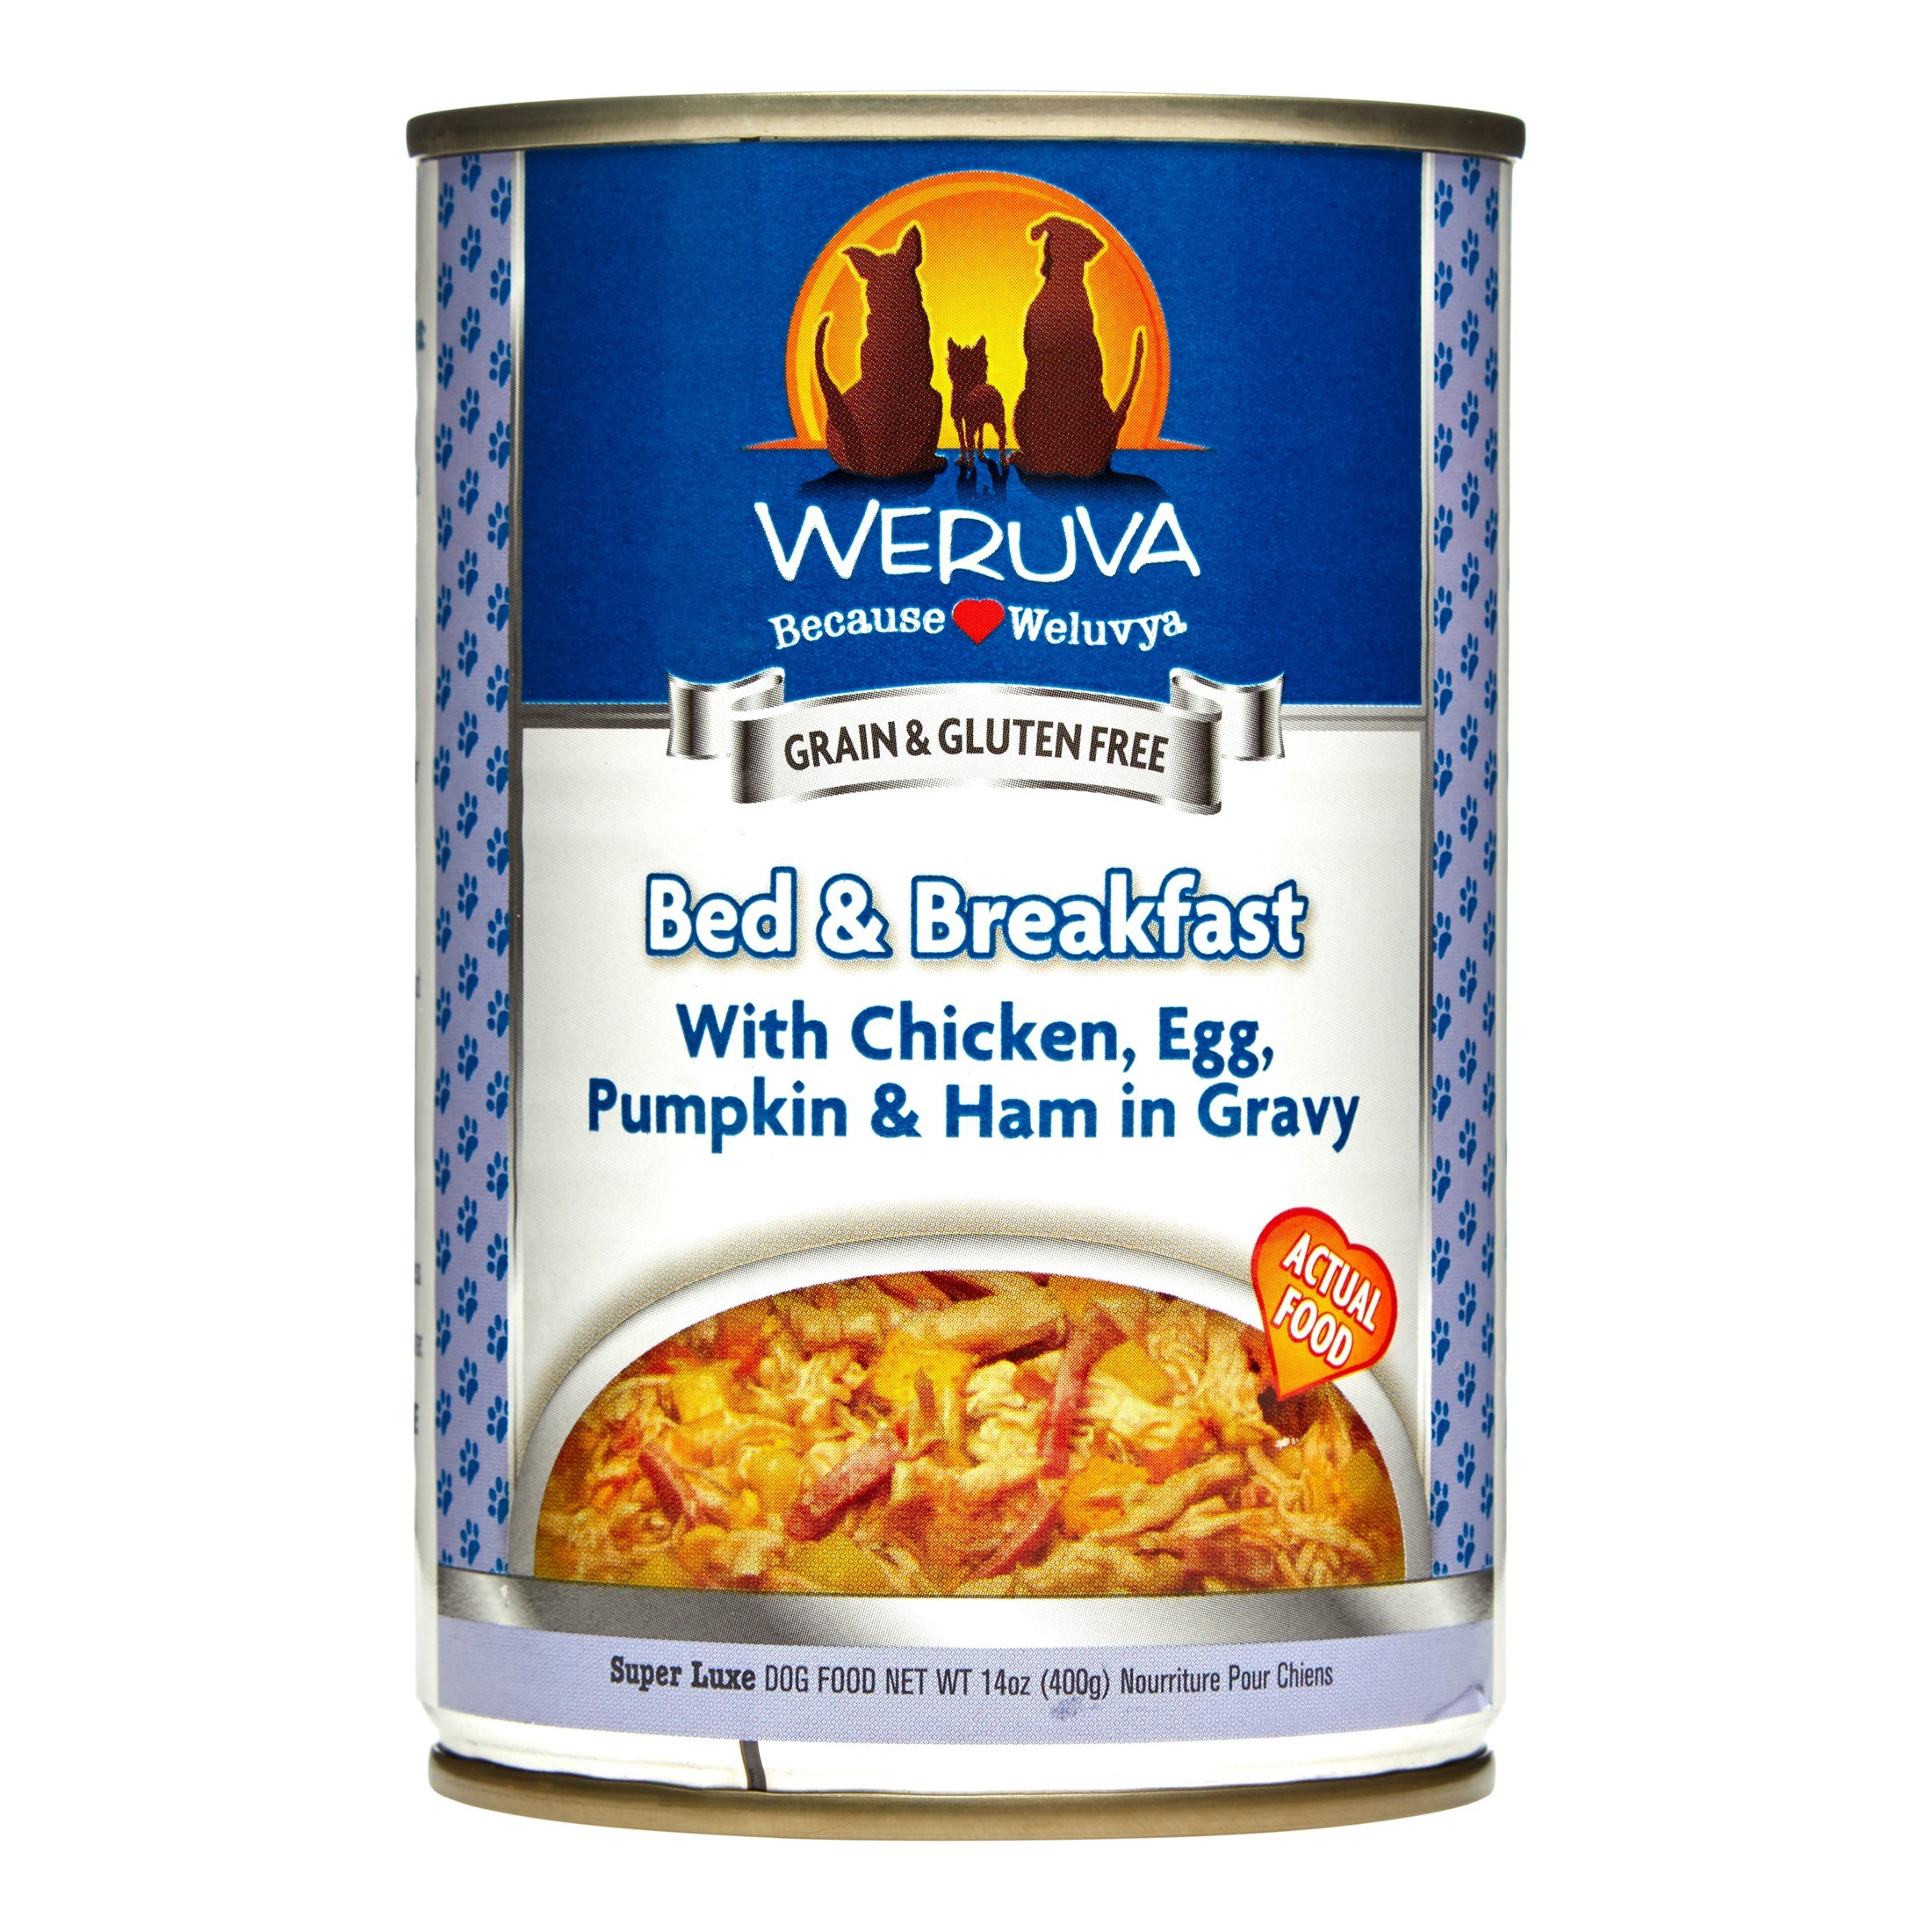 Weruva Human Style Grain-Free Bed & Breakfast with Chicken, Egg, Pumpkin & Ham Wet Dog Food, 14 Oz, Pack of 12